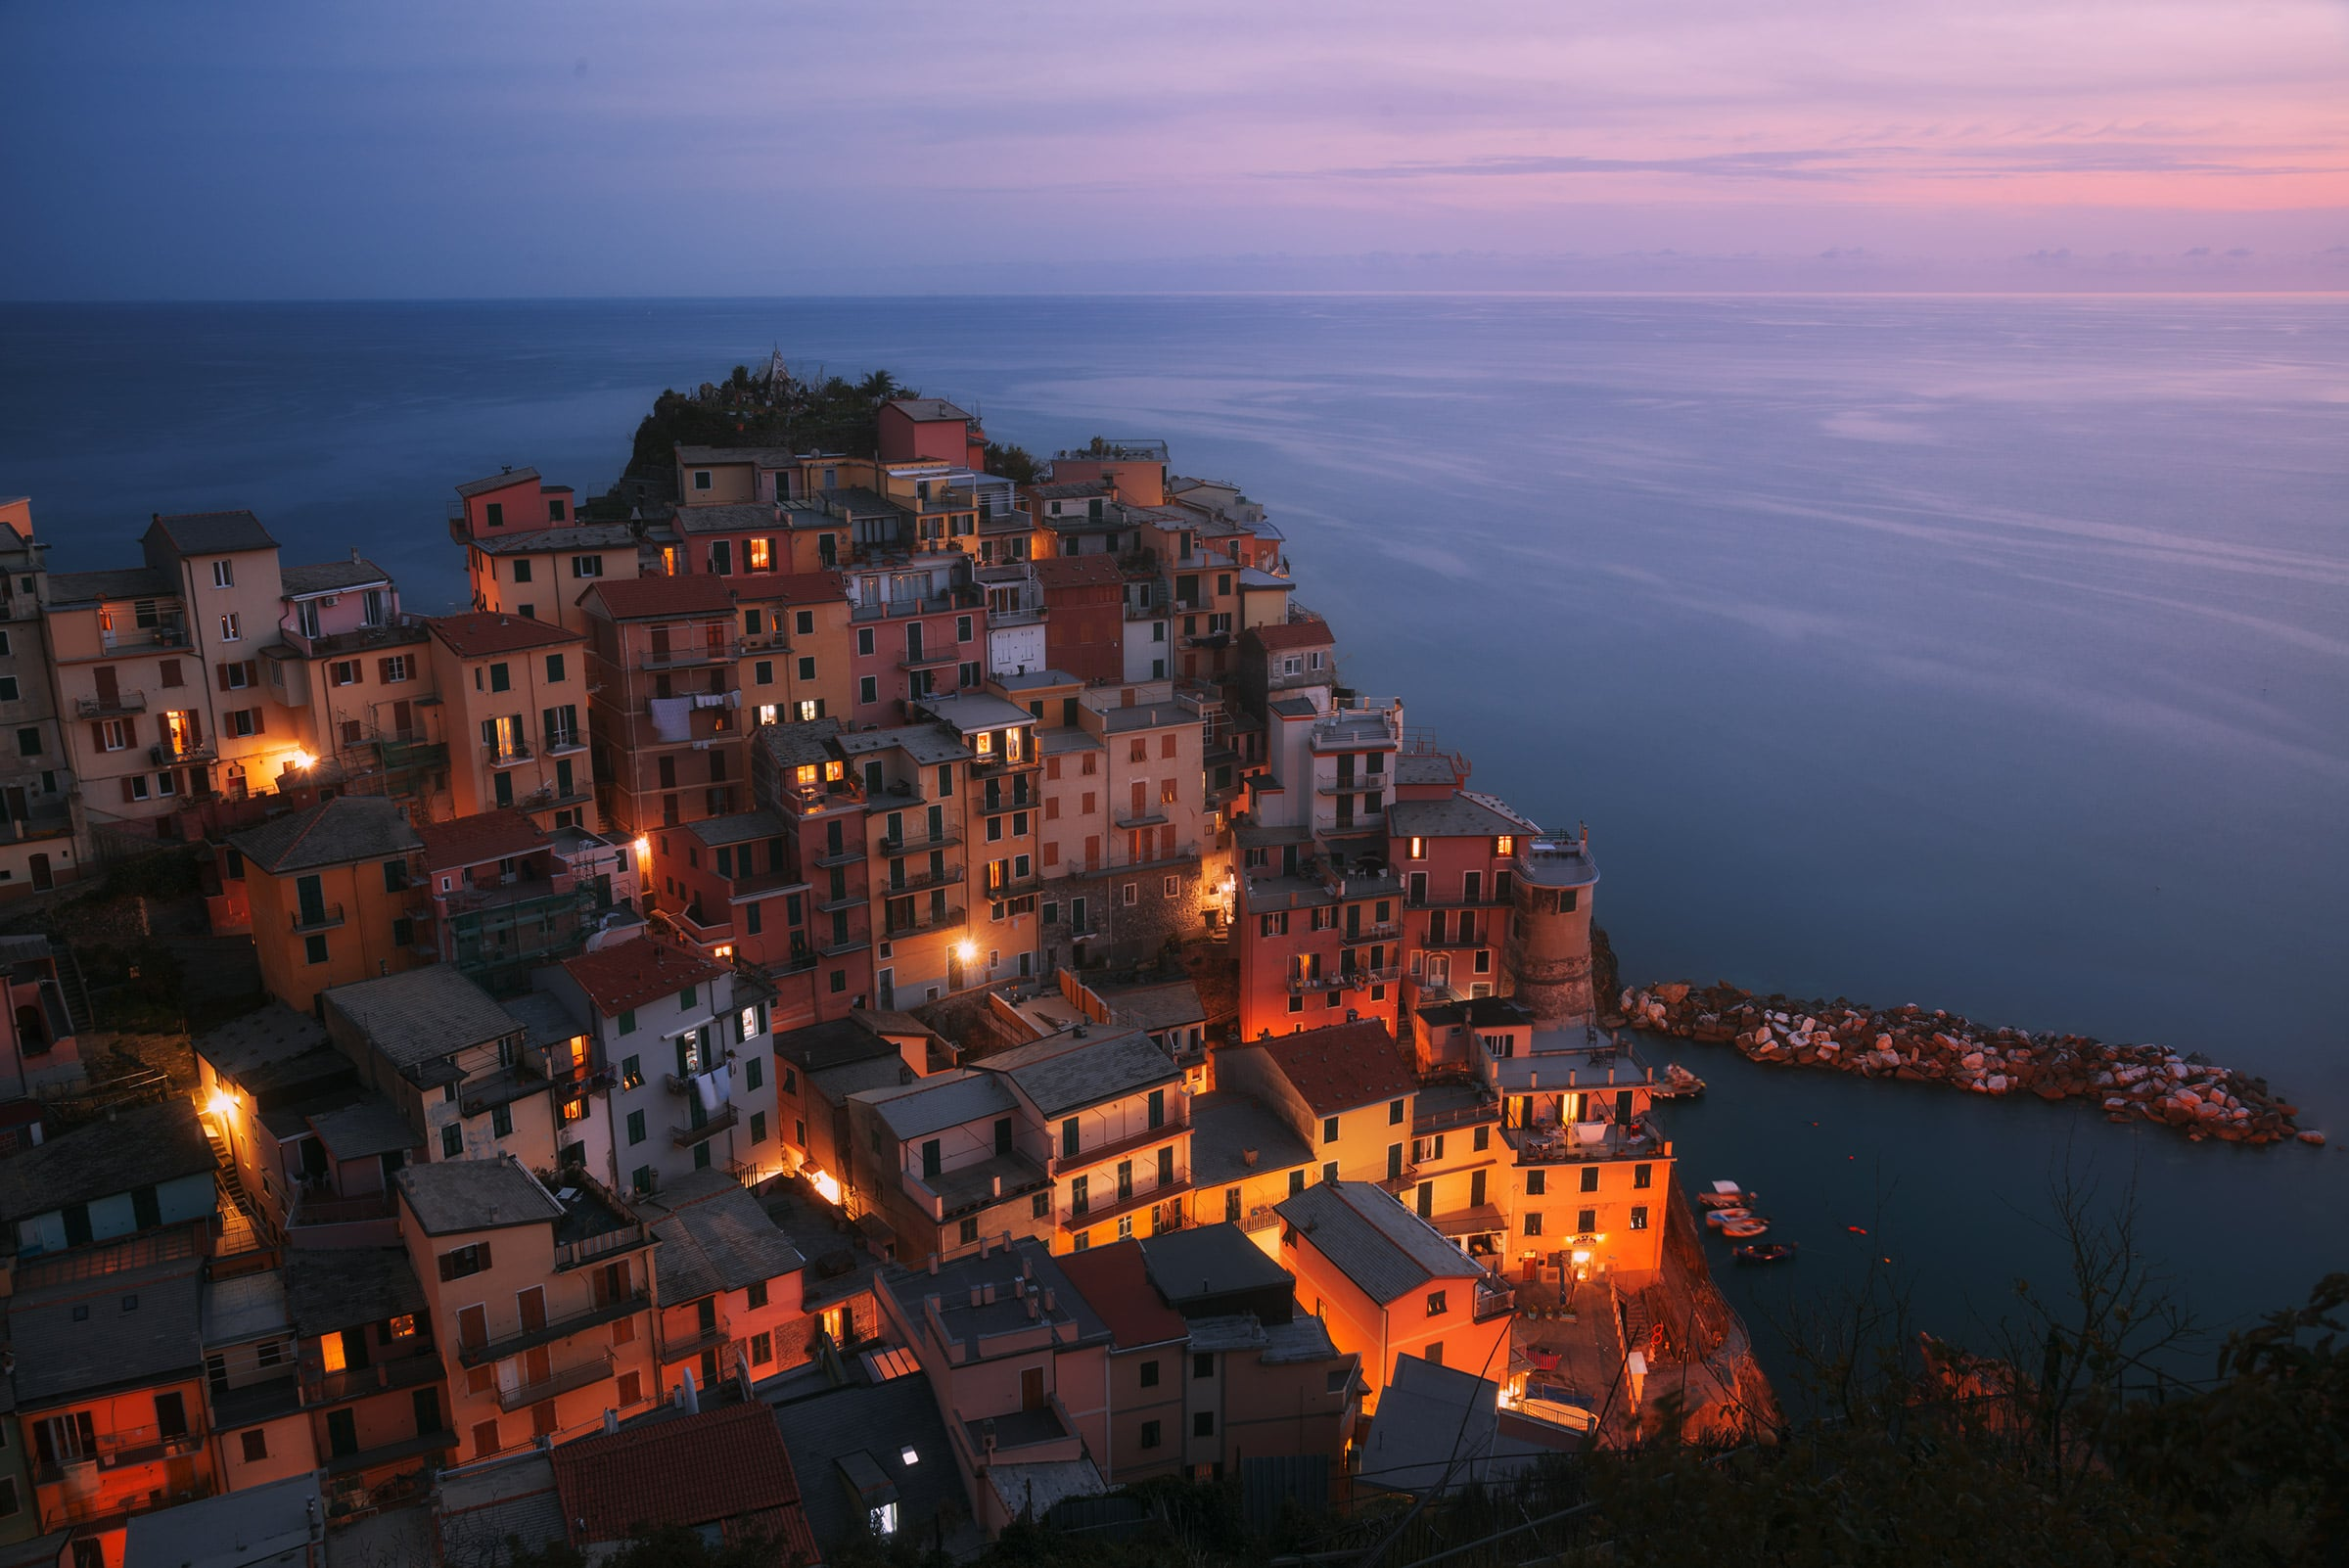 Tellaro during a seastorm clearing at sunset during a photo workshop